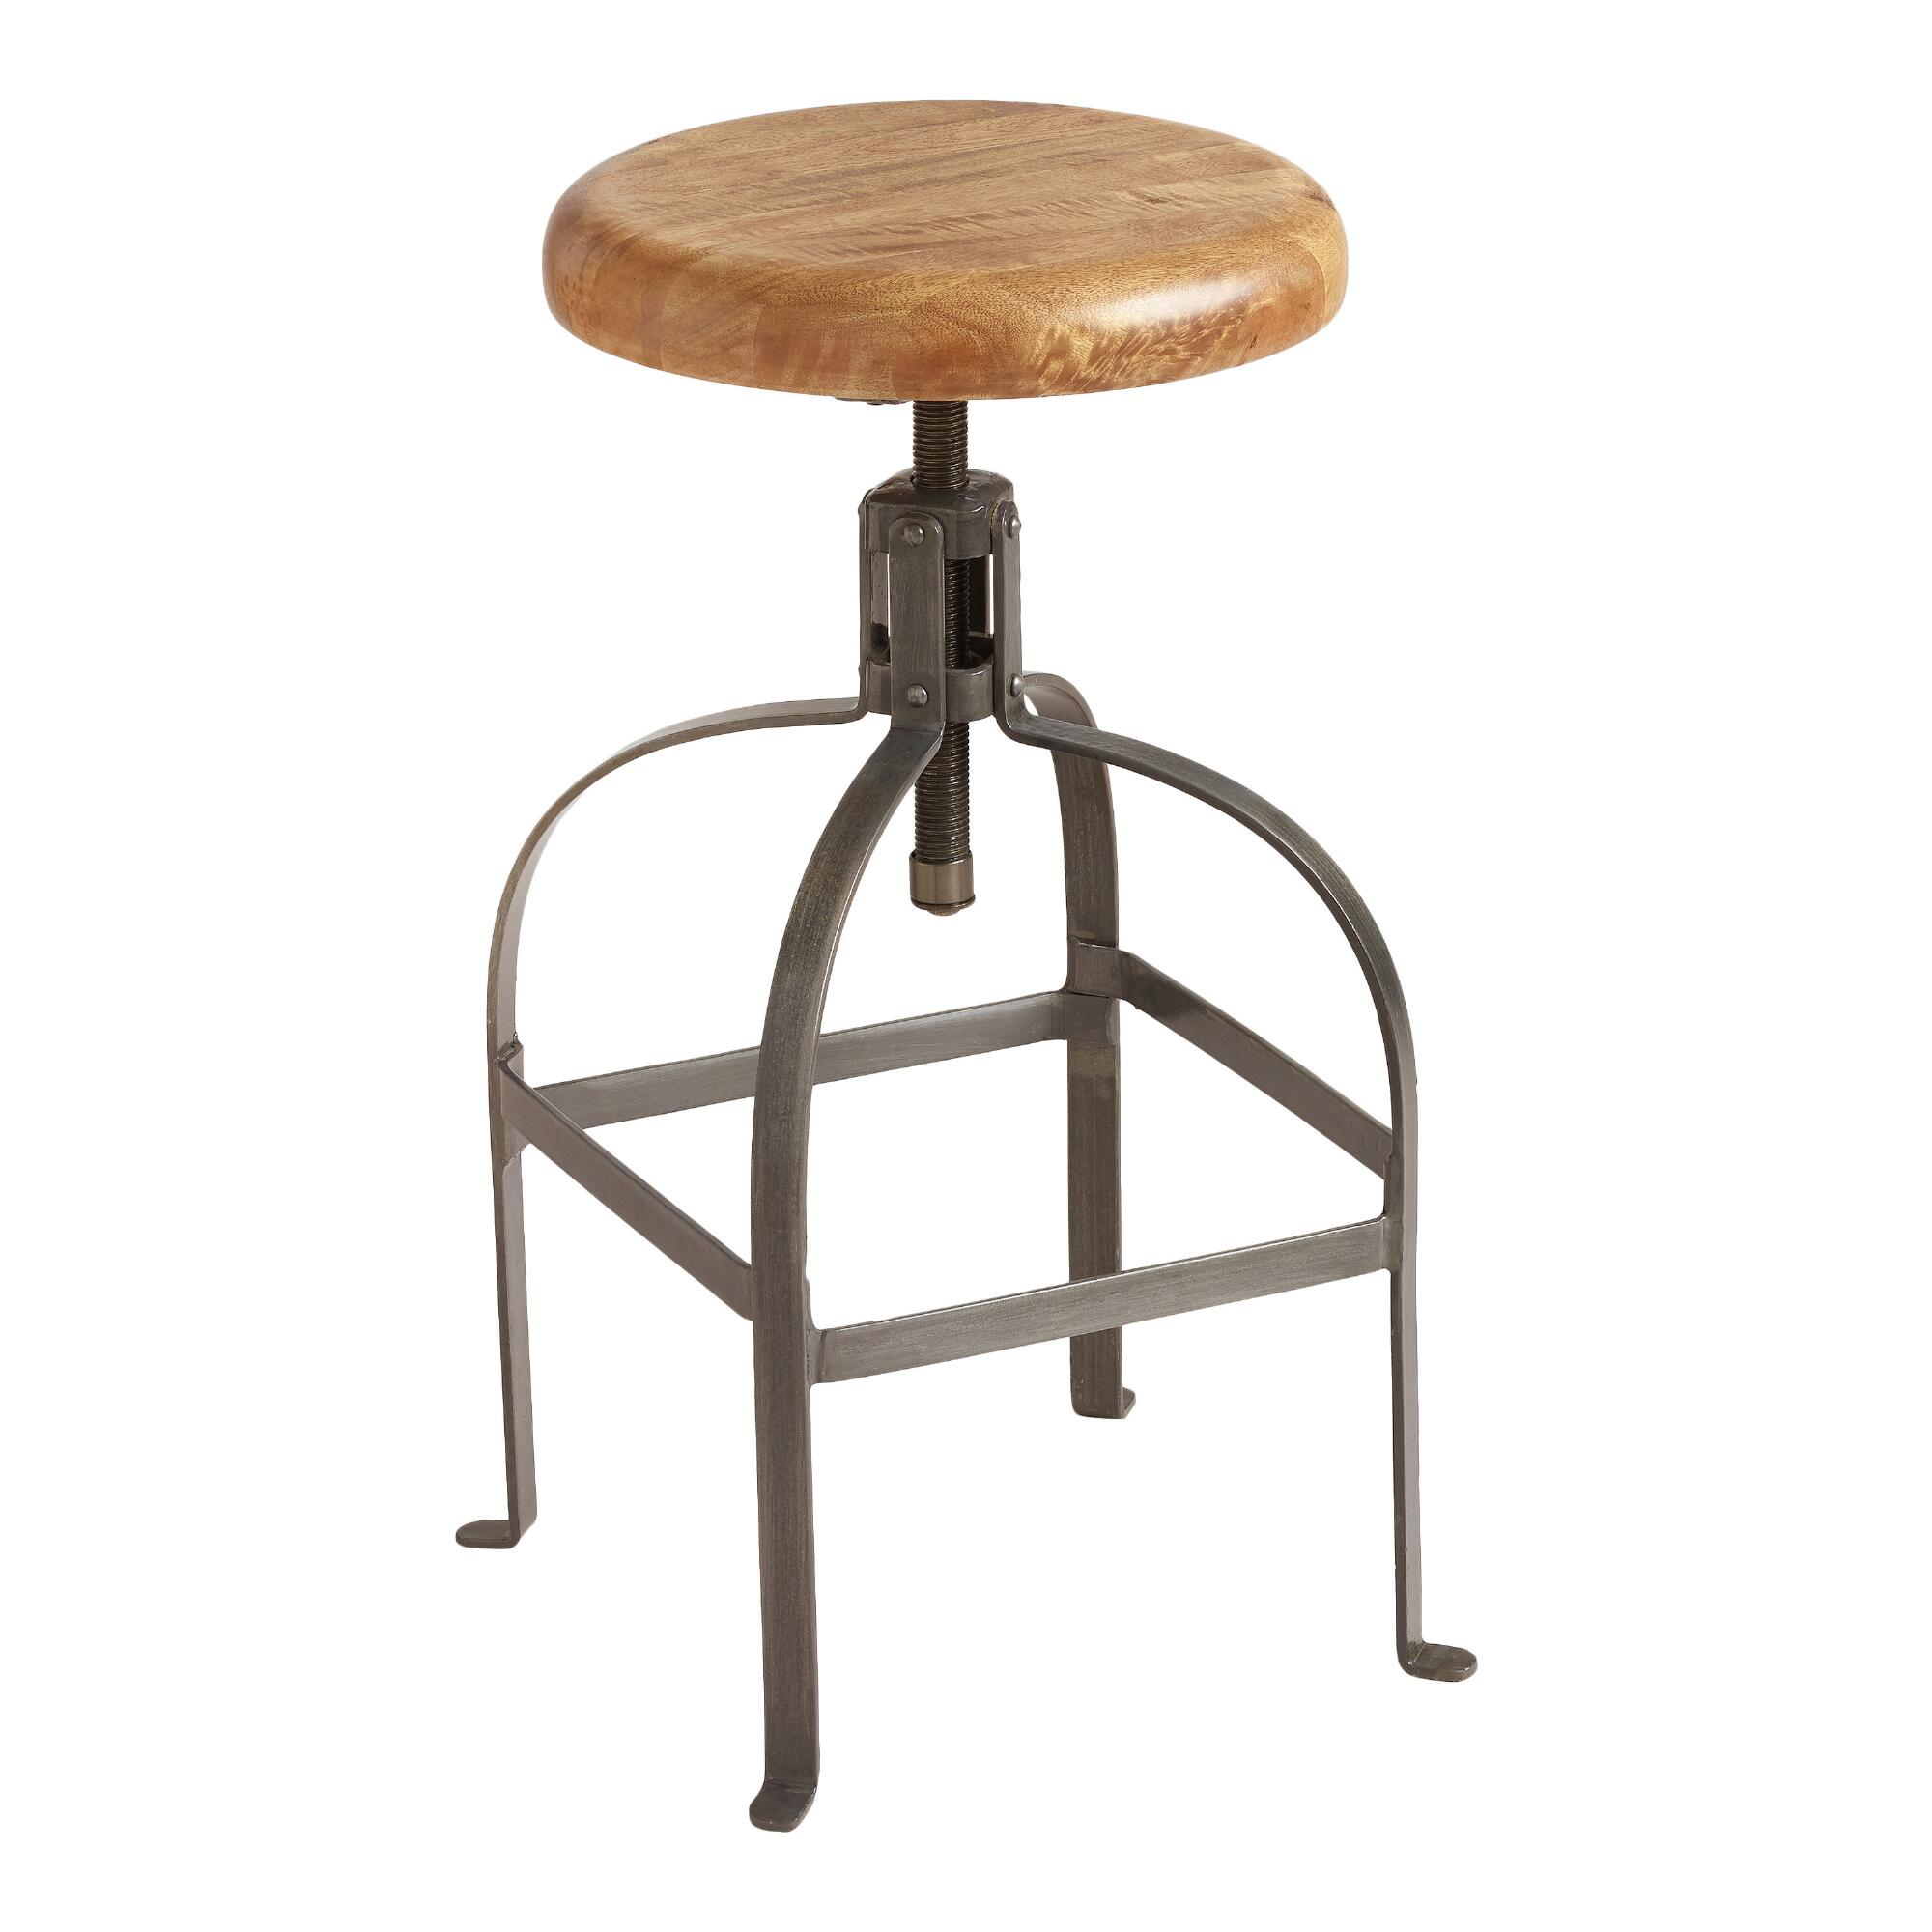 Adjustable Round Wood And Metal Stool By World Market